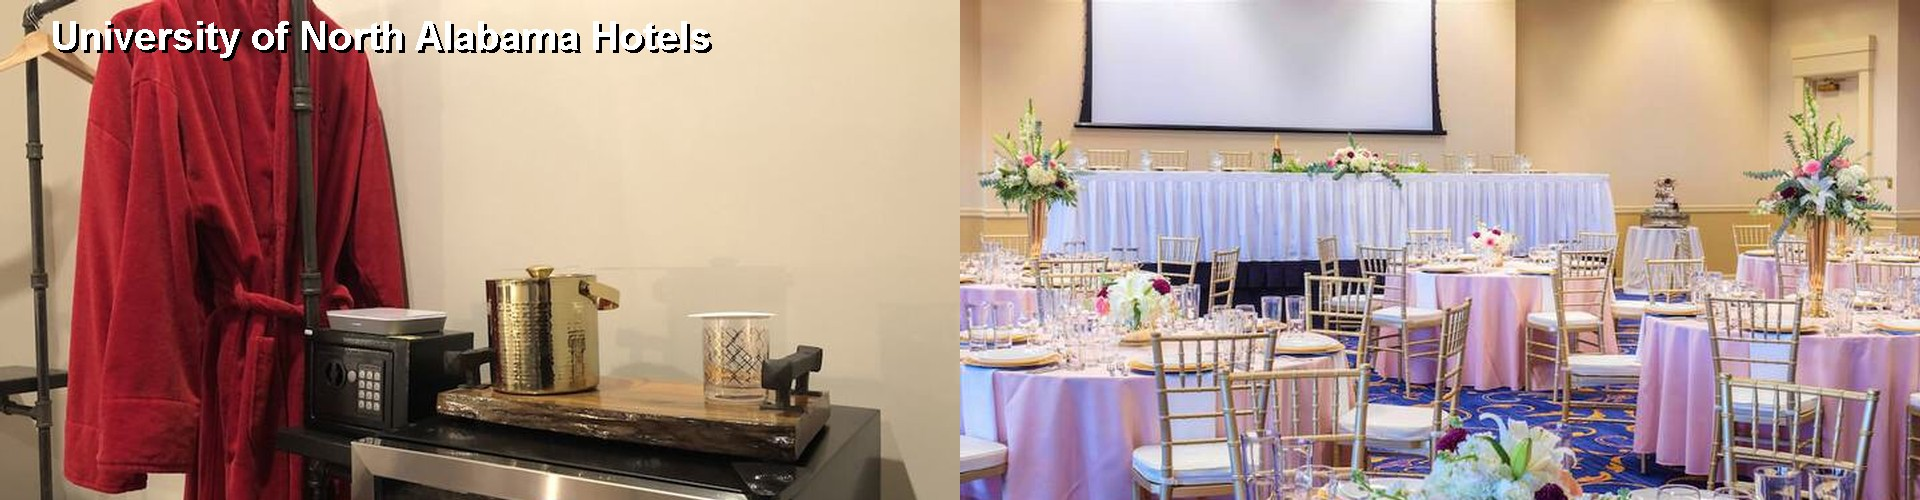 5 Best Hotels near University of North Alabama